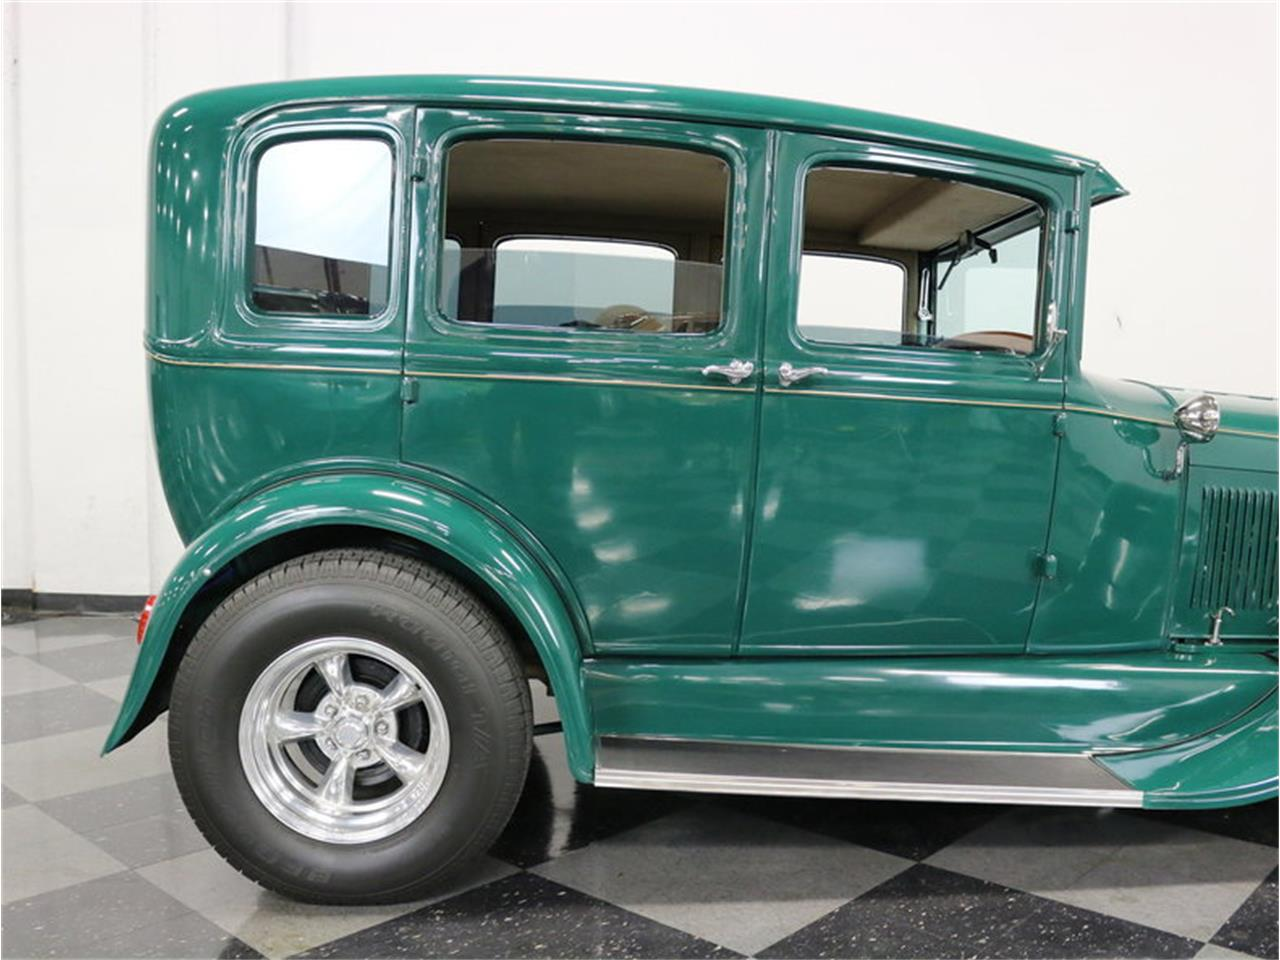 Large Picture of 1929 Ford Model A located in Ft Worth Texas Offered by Streetside Classics - Dallas / Fort Worth - MAV8